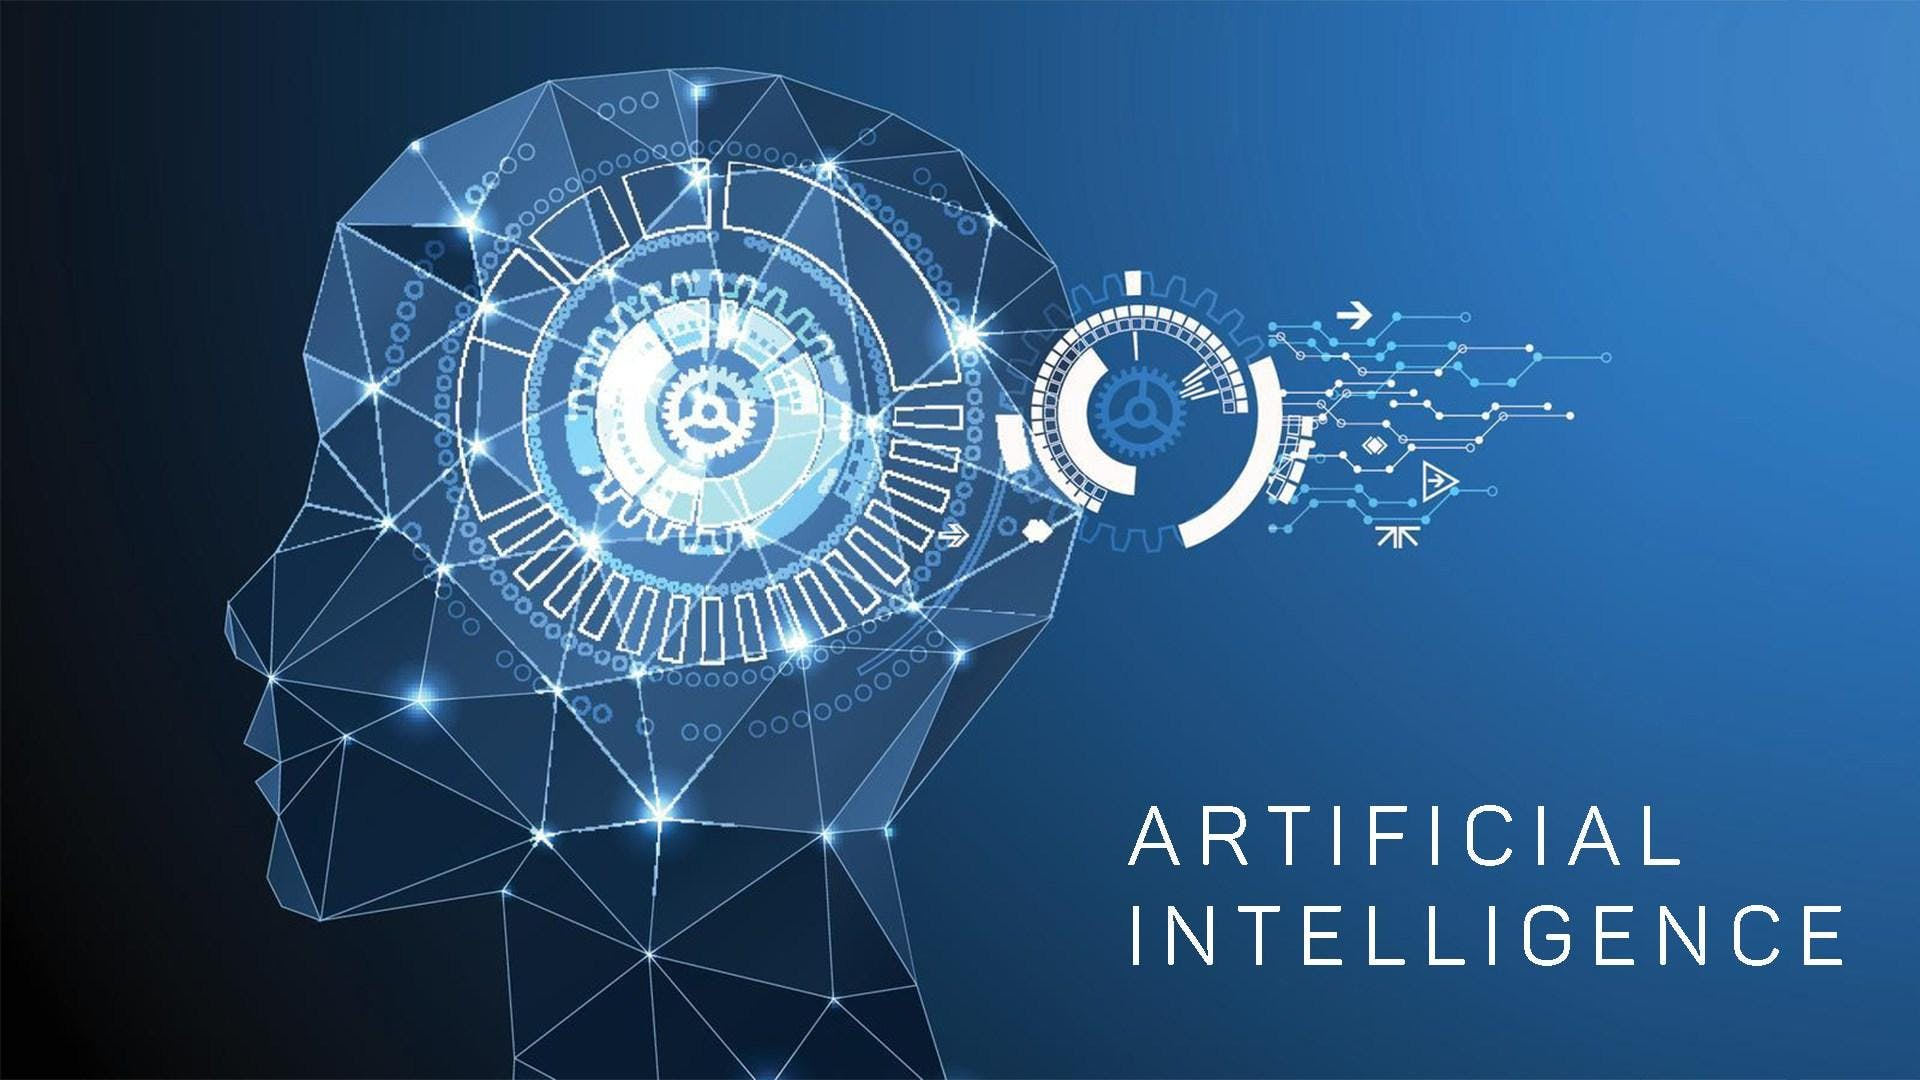 Develop a Successful Artificial Intelligence Tech Entrepreneur Startup Business Today! Dublin - AI - Entrepreneur - Workshop - Hackathon - Bootcamp - Virtual Class - Seminar - Training - Lecture - Webinar - Conference - Course